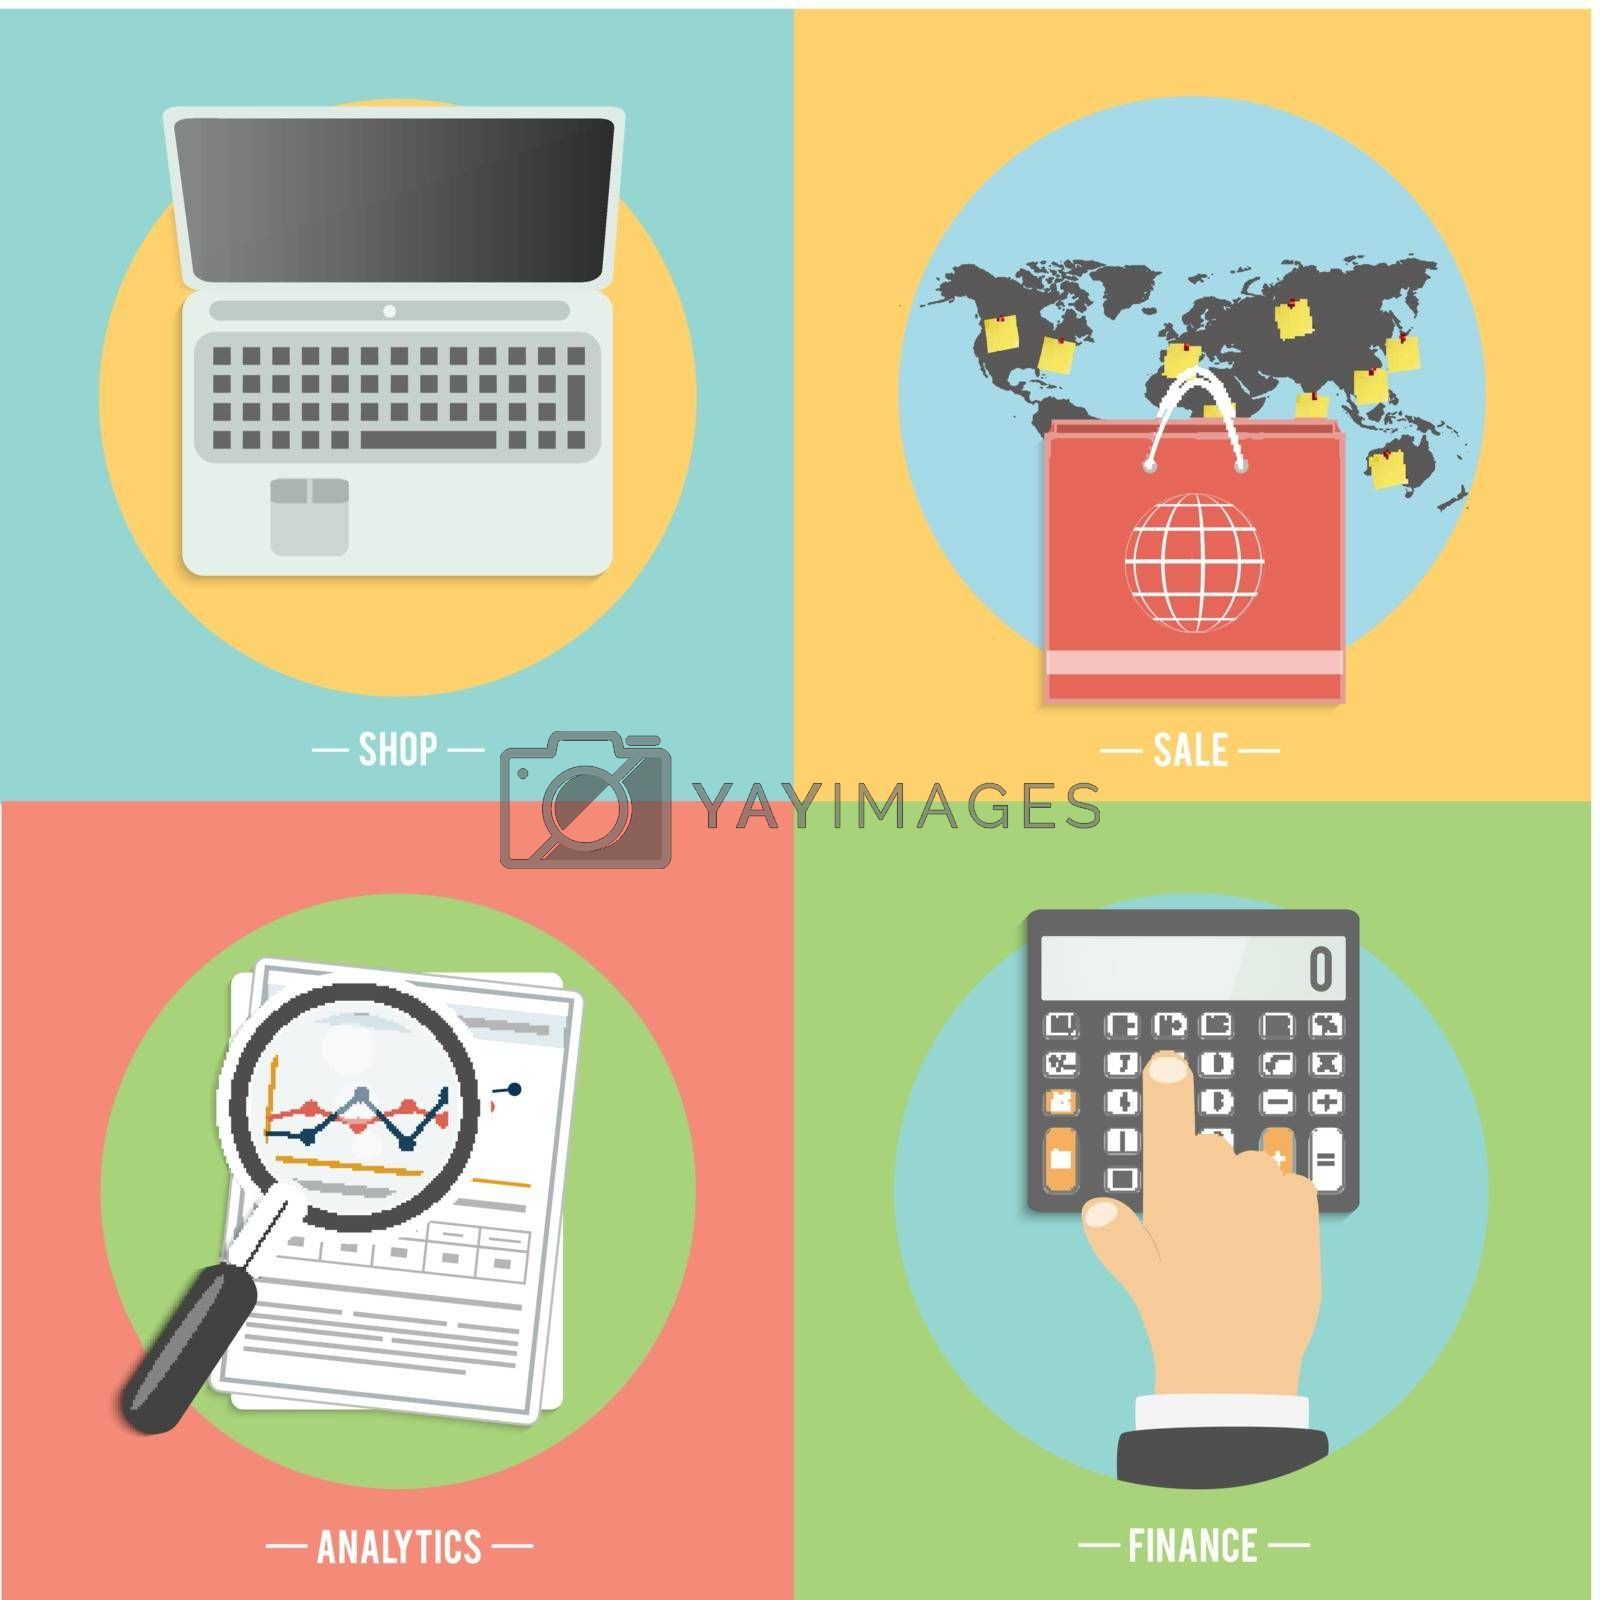 Icons for e-commerce, online shopping, shop, sale, finance, analytics, business tools